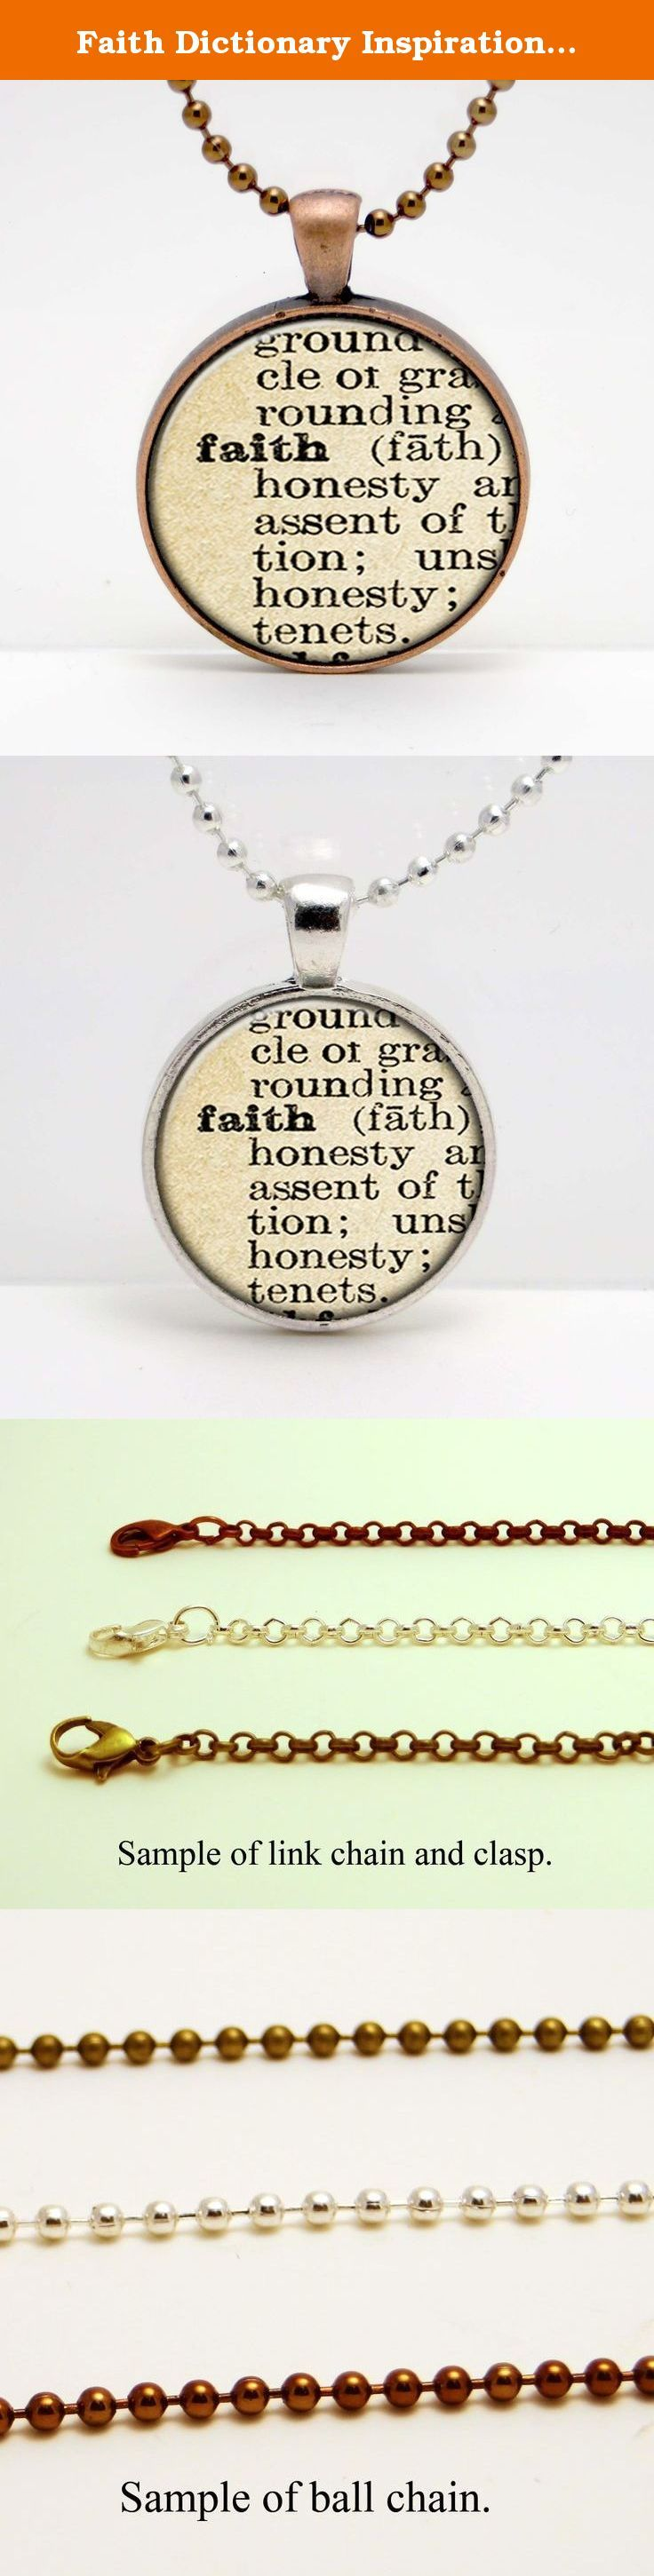 "Faith Dictionary Inspirational Word Art Glass Pendant or Key Chain- 30 mm round- Chain Included- Made to Order. This image is set in a 30 mm bezel and comes complete with a 24"" matching chain or matching key chain. Please choose from silver, copper, or bronze for the bezel and chain color. Please choose from a link chain, ball chain or key chain. This listing is for the glass art pendant and 24"" chain, or pendant and key chain. My glass art pendants are handcrafted using a high quality..."